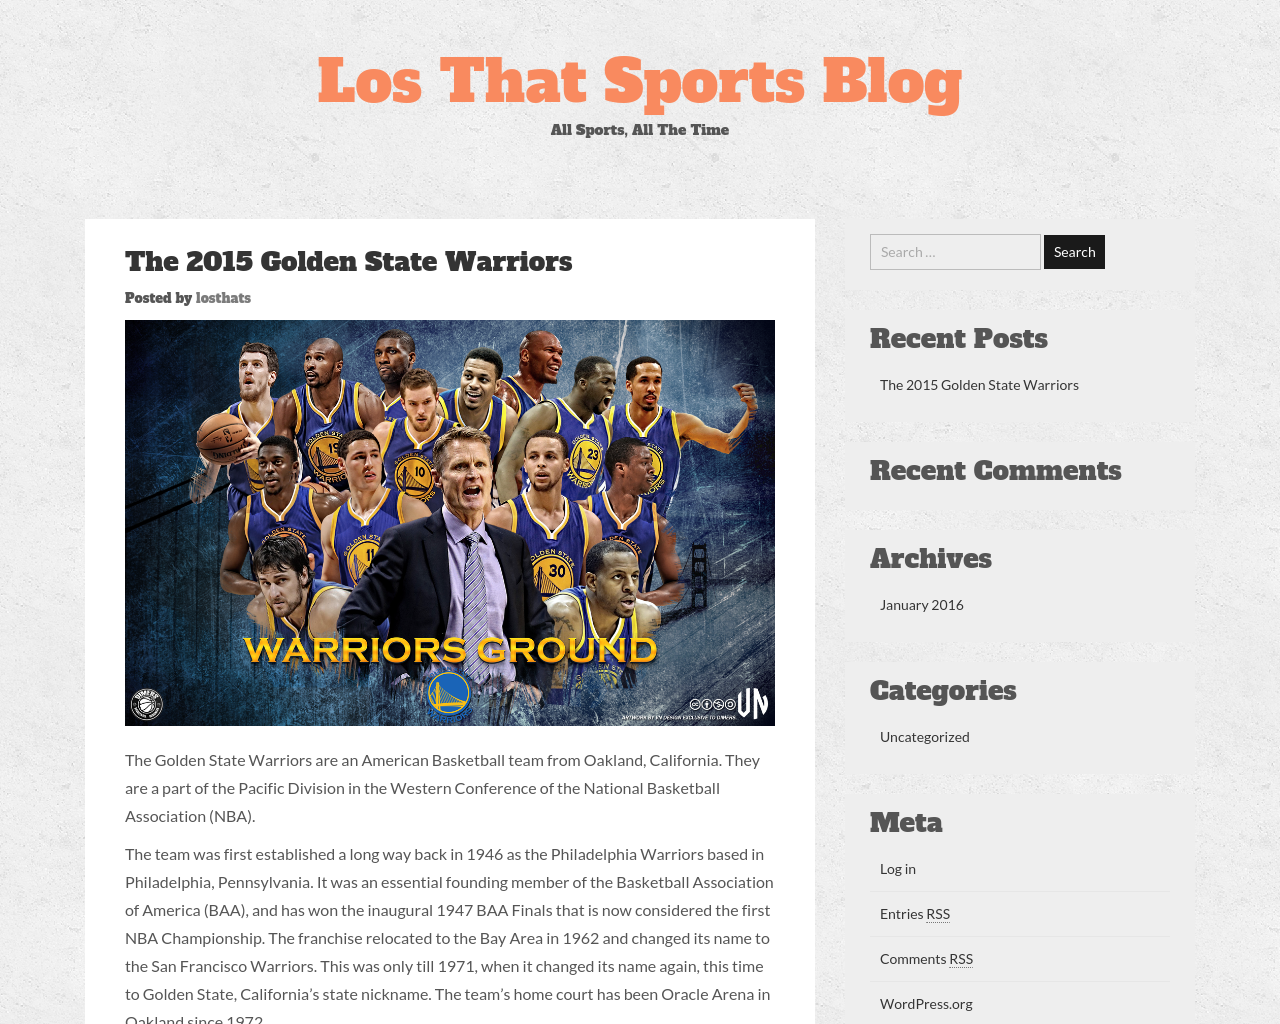 Los-That-Sports-Blog-Advertising-Reviews-Pricing